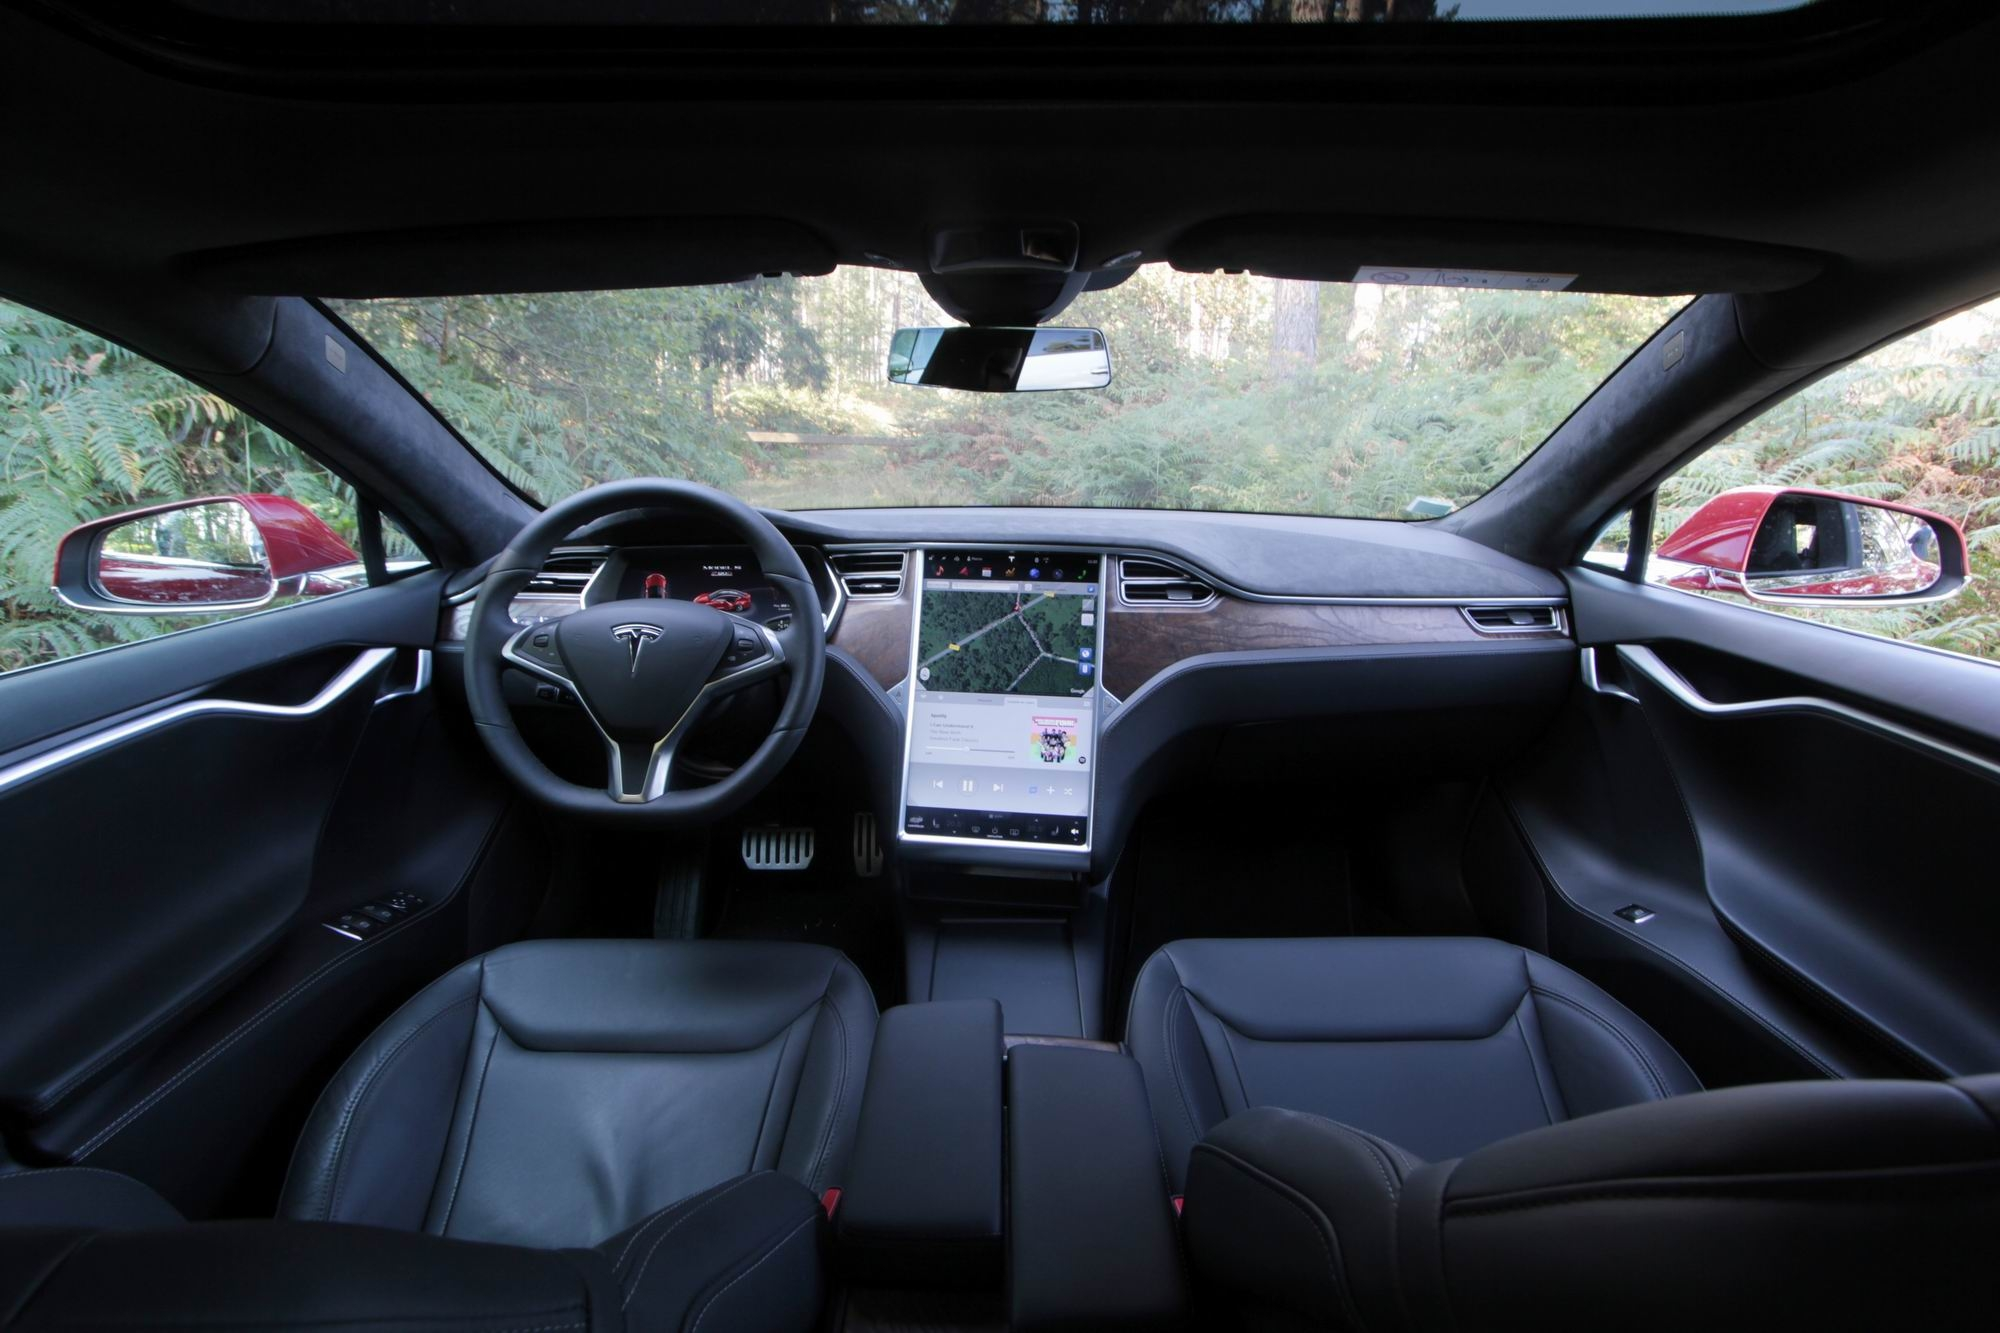 Essai vid o tesla model s restyl e 2016 le p trole c for Interieur tesla model s